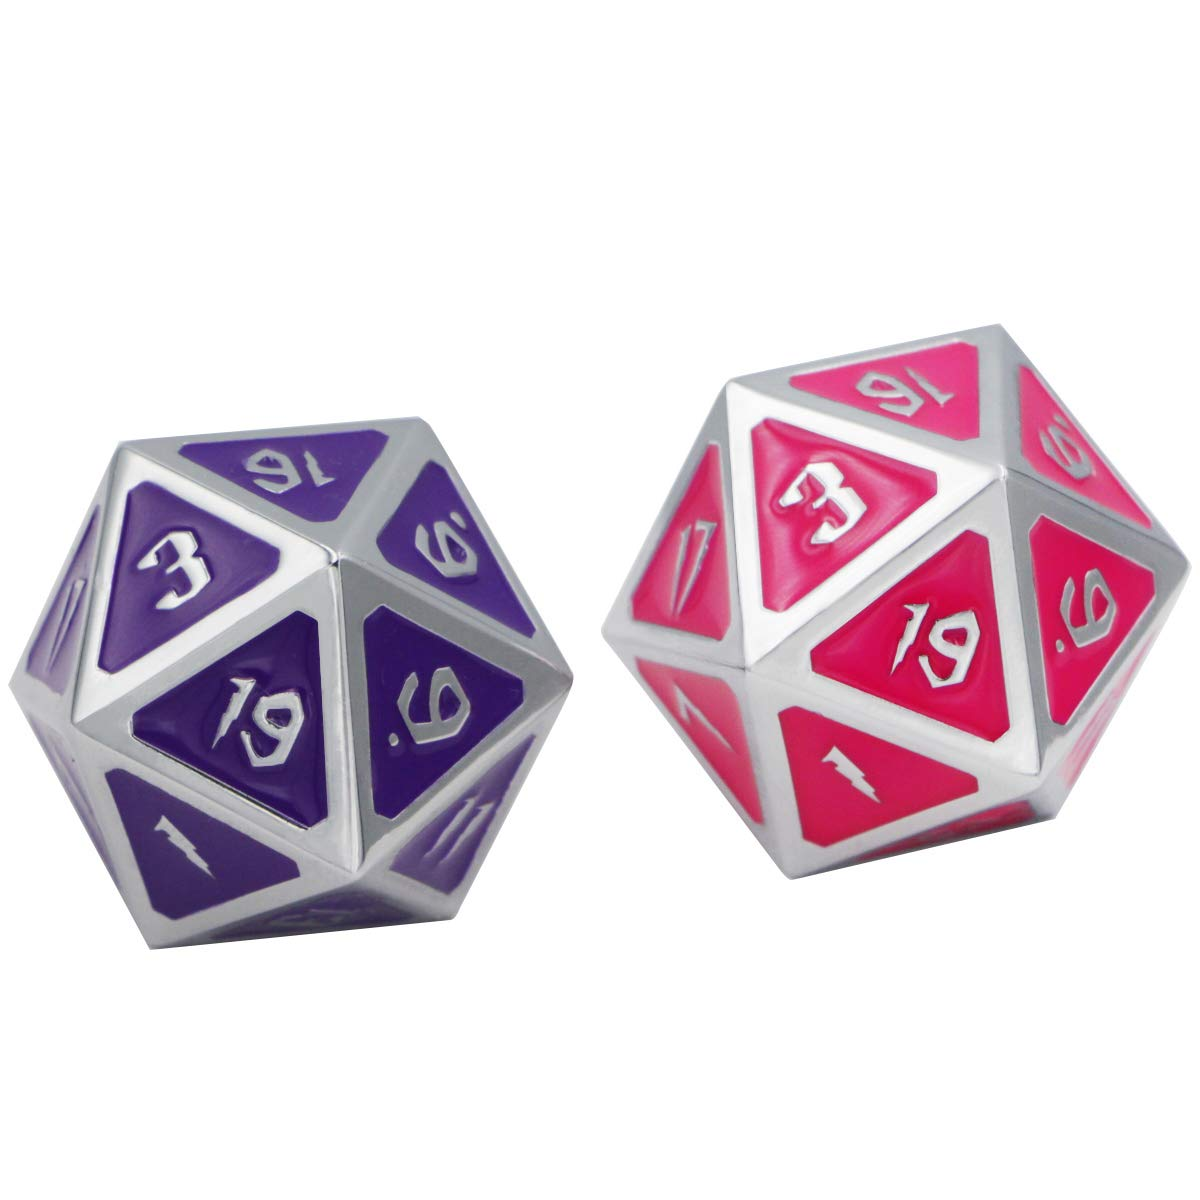 1 Single Big D20 Metal Dice 30mm DNDWoW Color Change Die Between Purple and Pink with Silver Numbers - BWSZP